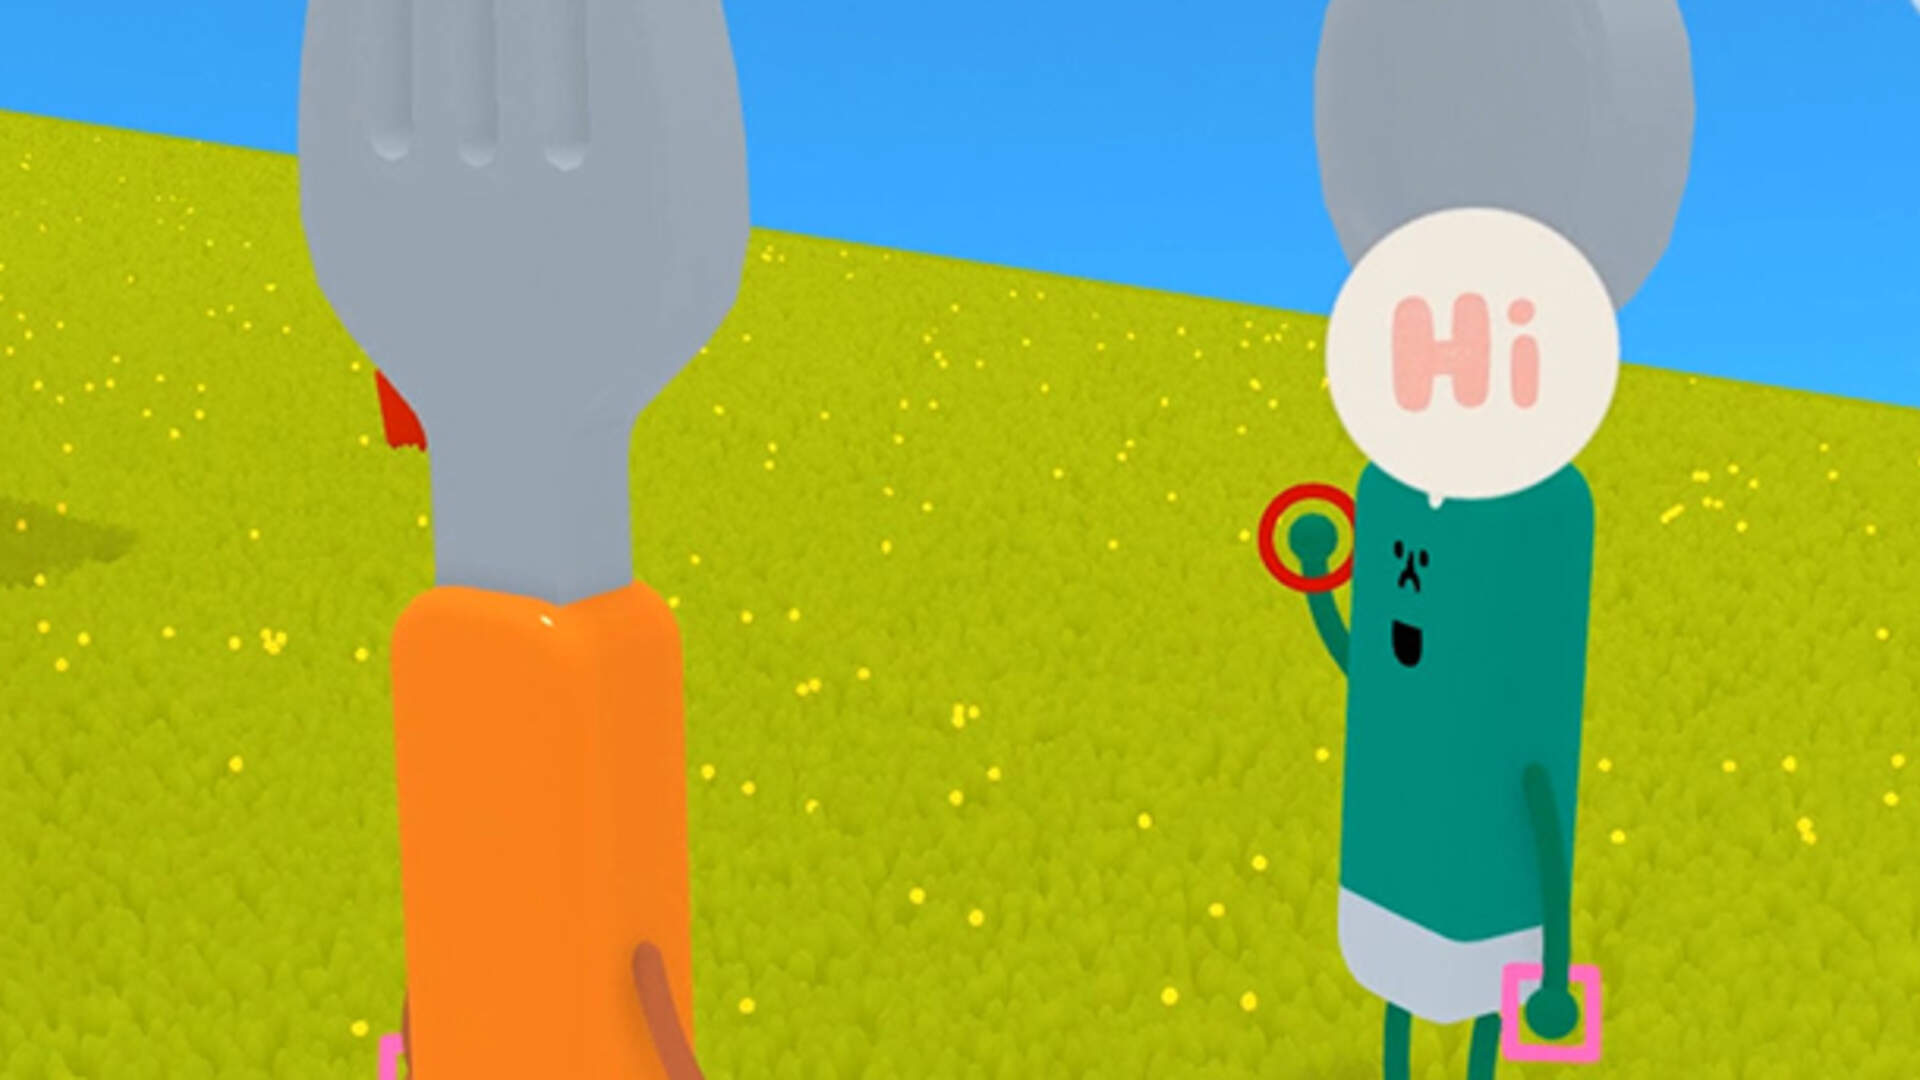 Keita Takahashi on Wattam and the Superfluousness of Video Games